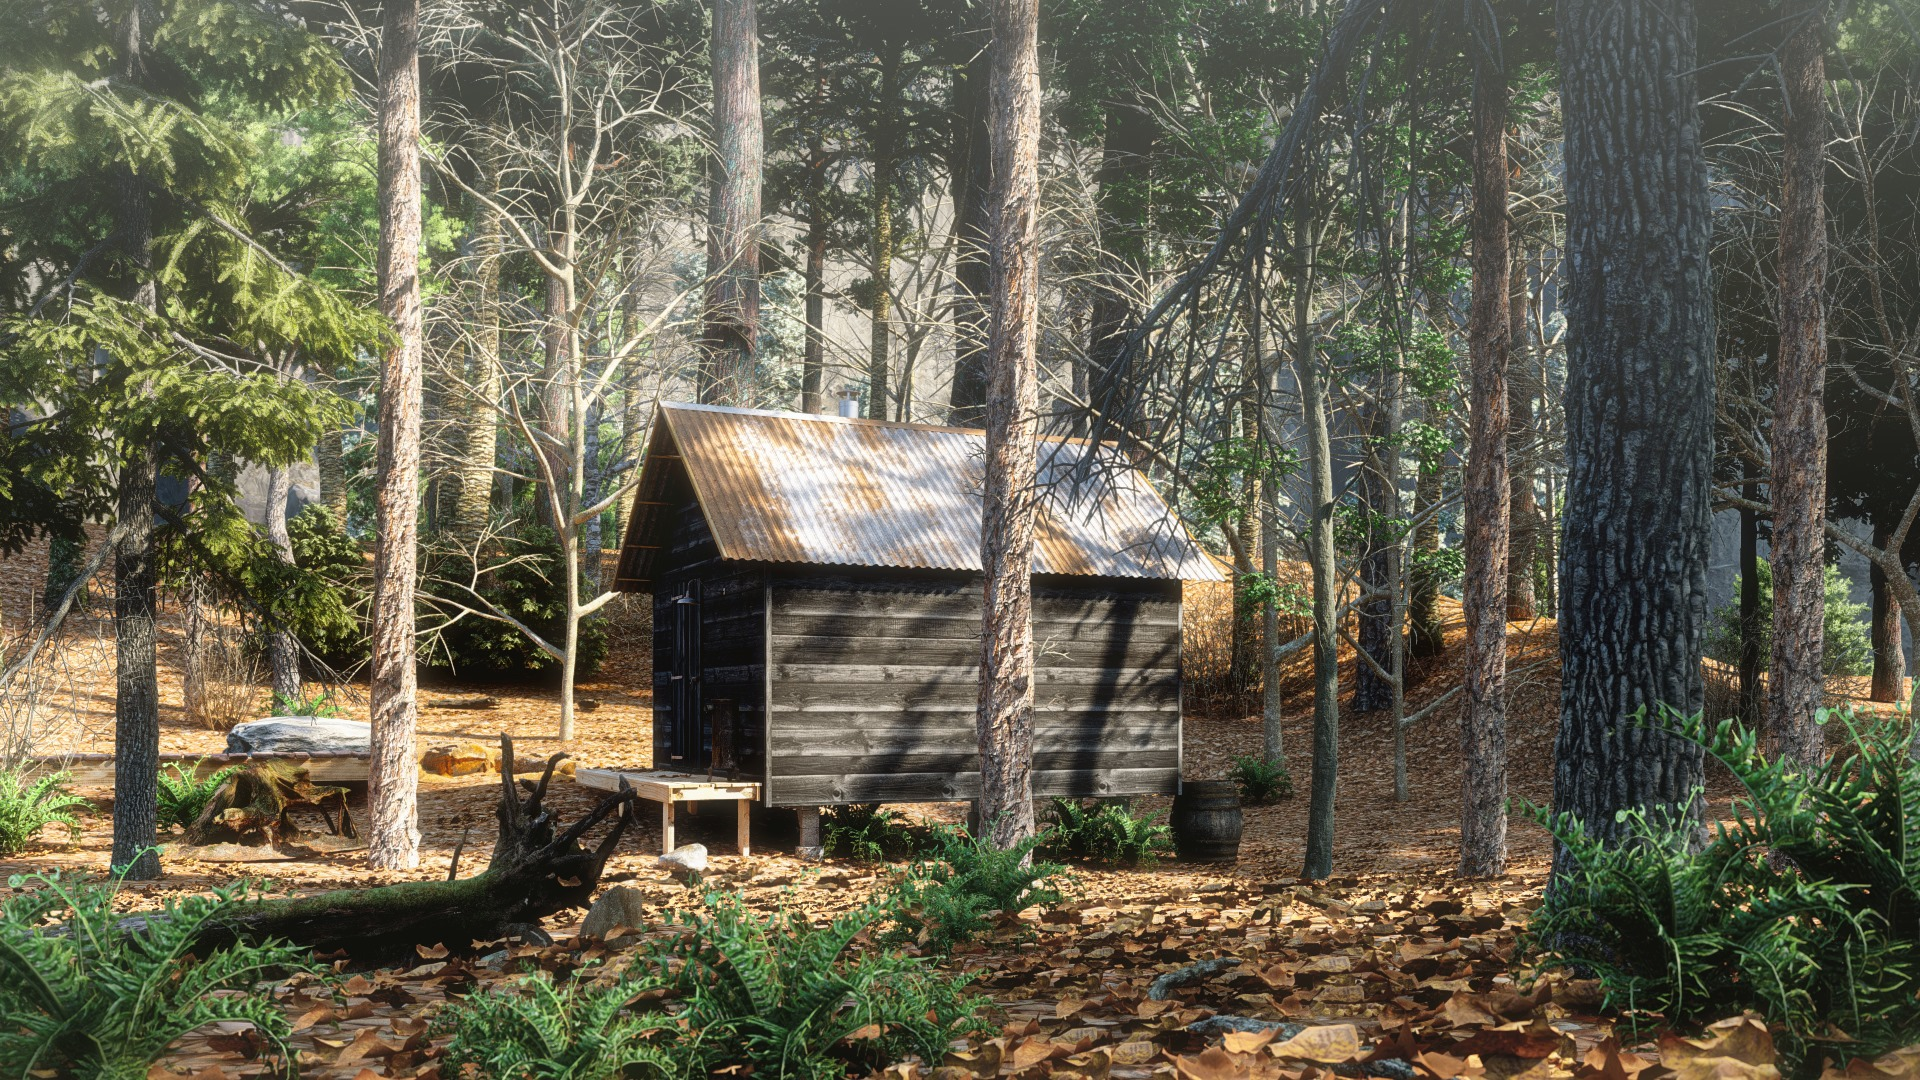 Cabin in the forest, rendered in Lumion by D.Wulf